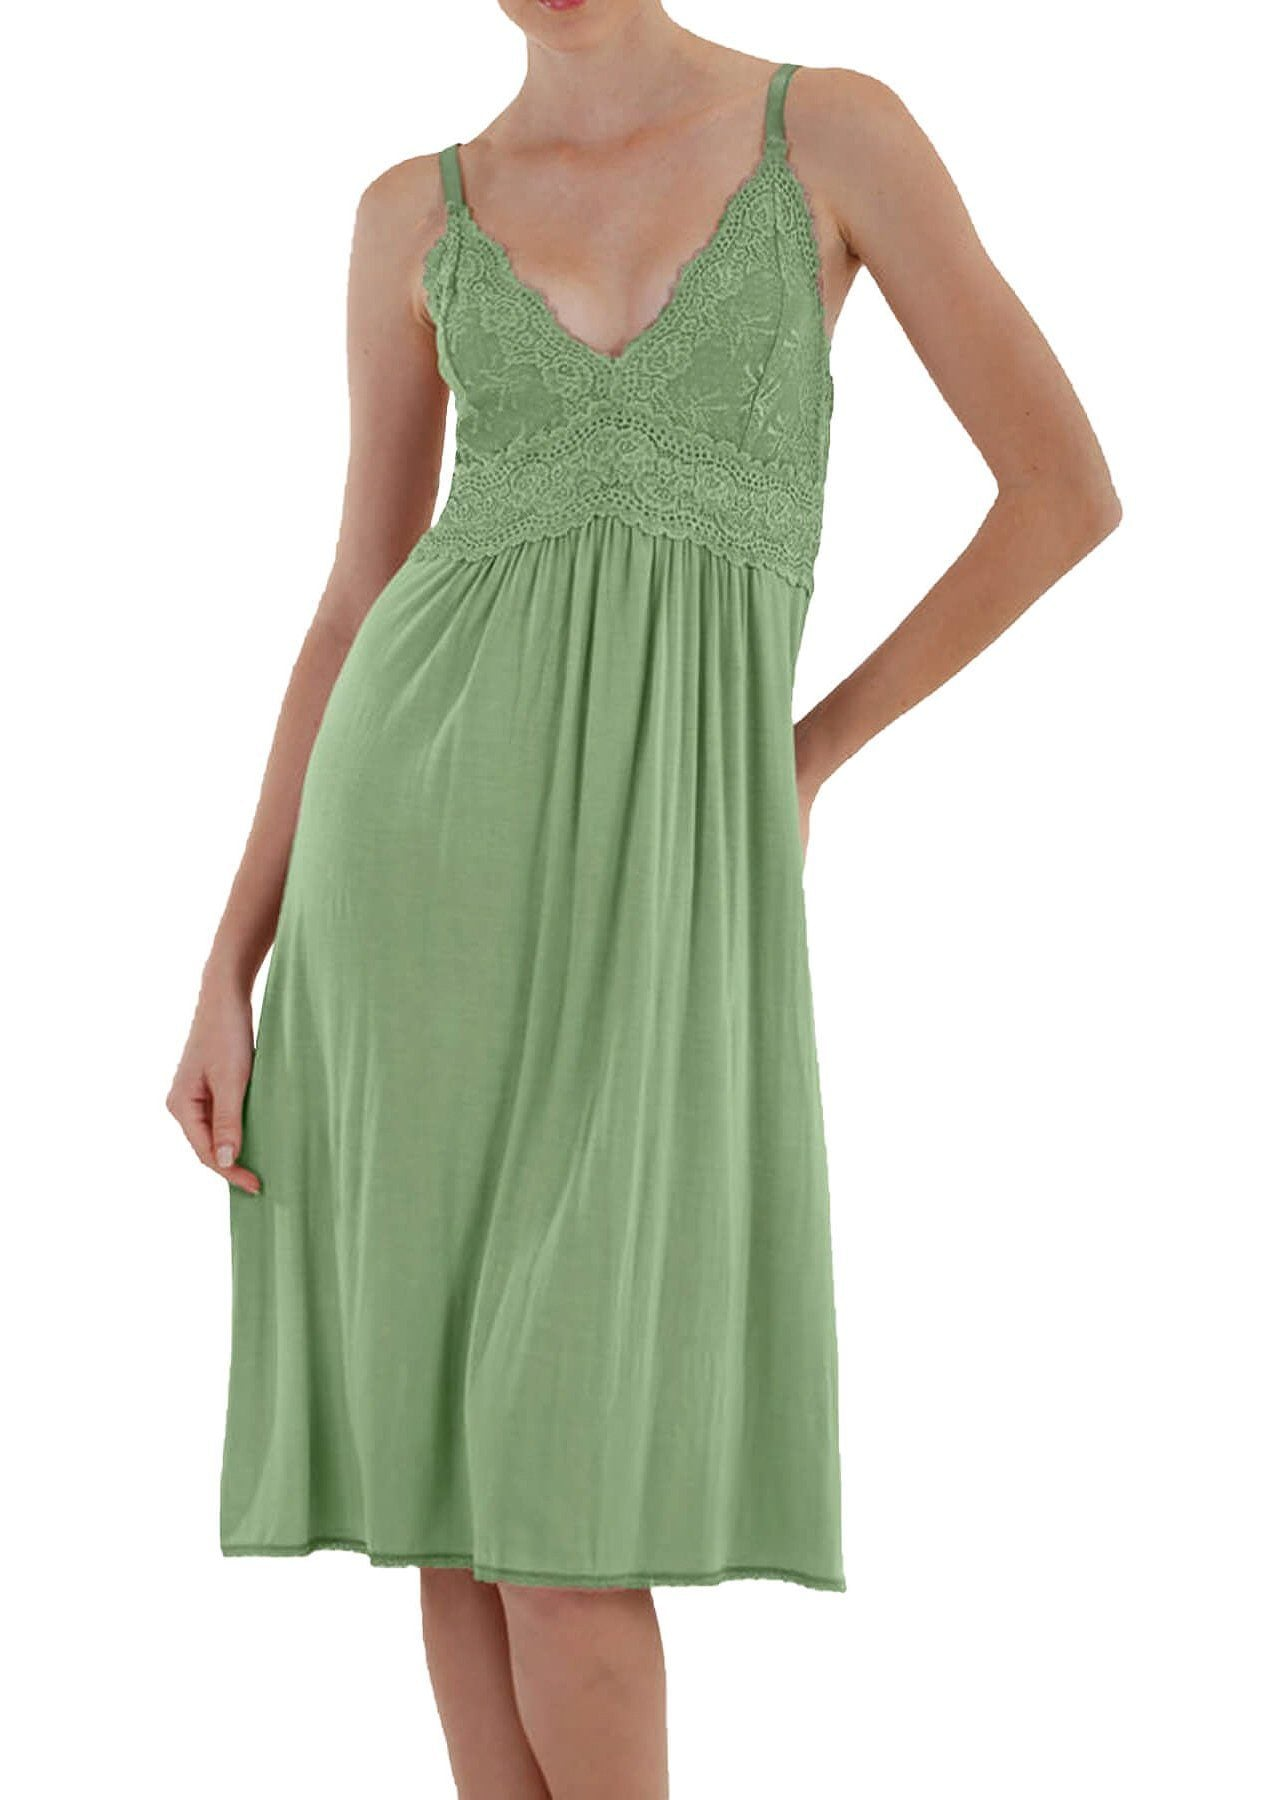 Bliss Knit Nightgown - Celery Mystique Intimates